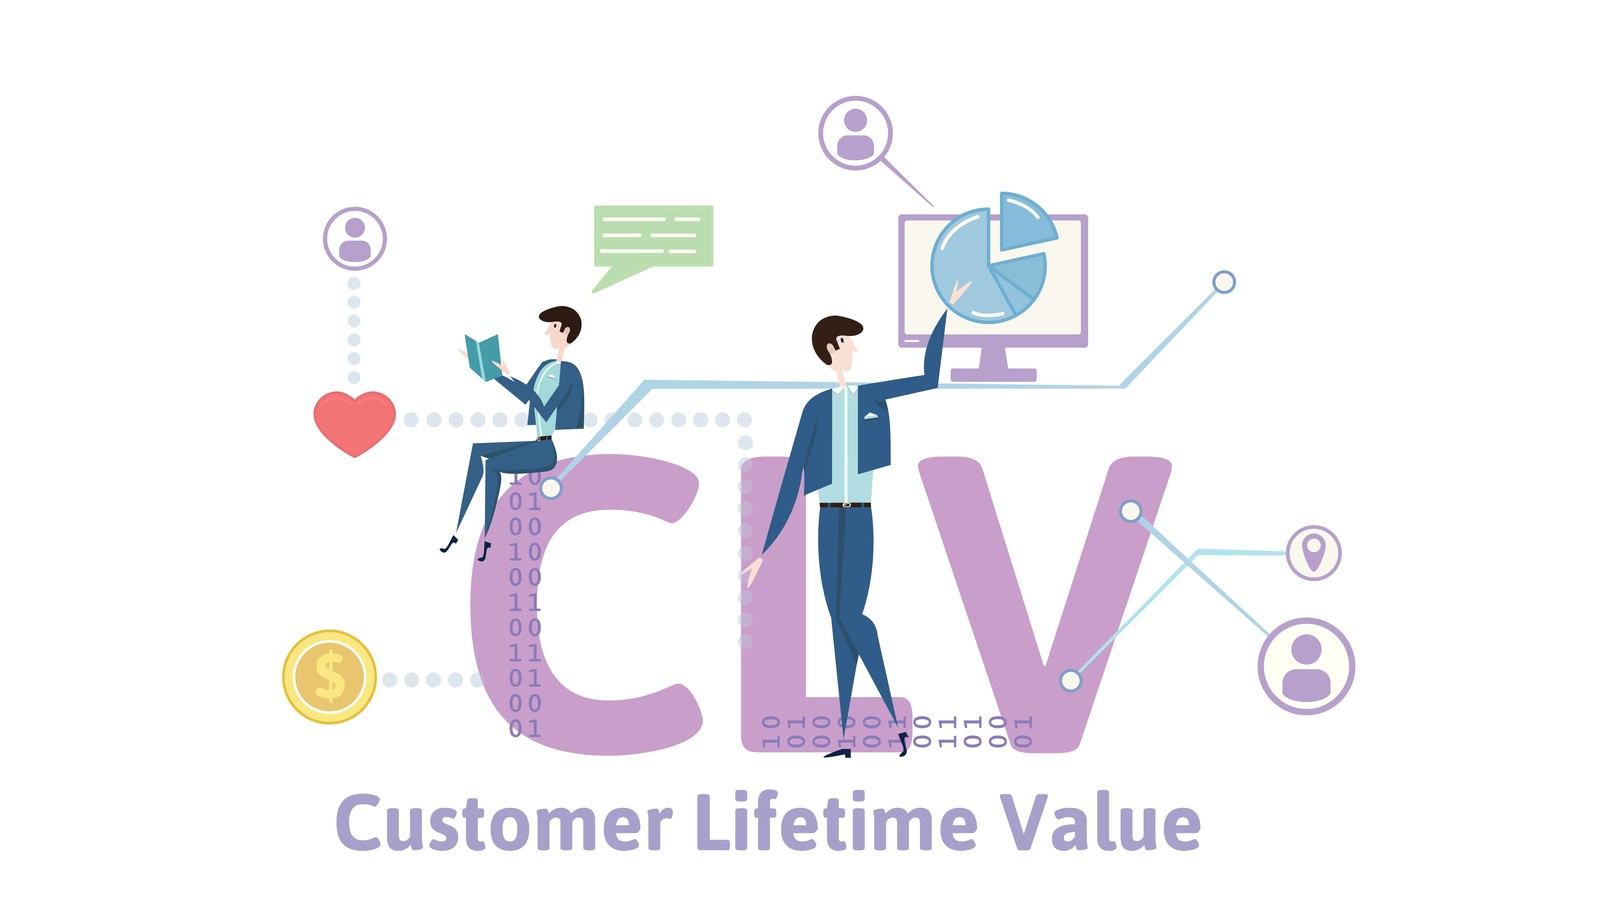 How to Calculate Customer Lifetime Value for SaaS Businesses